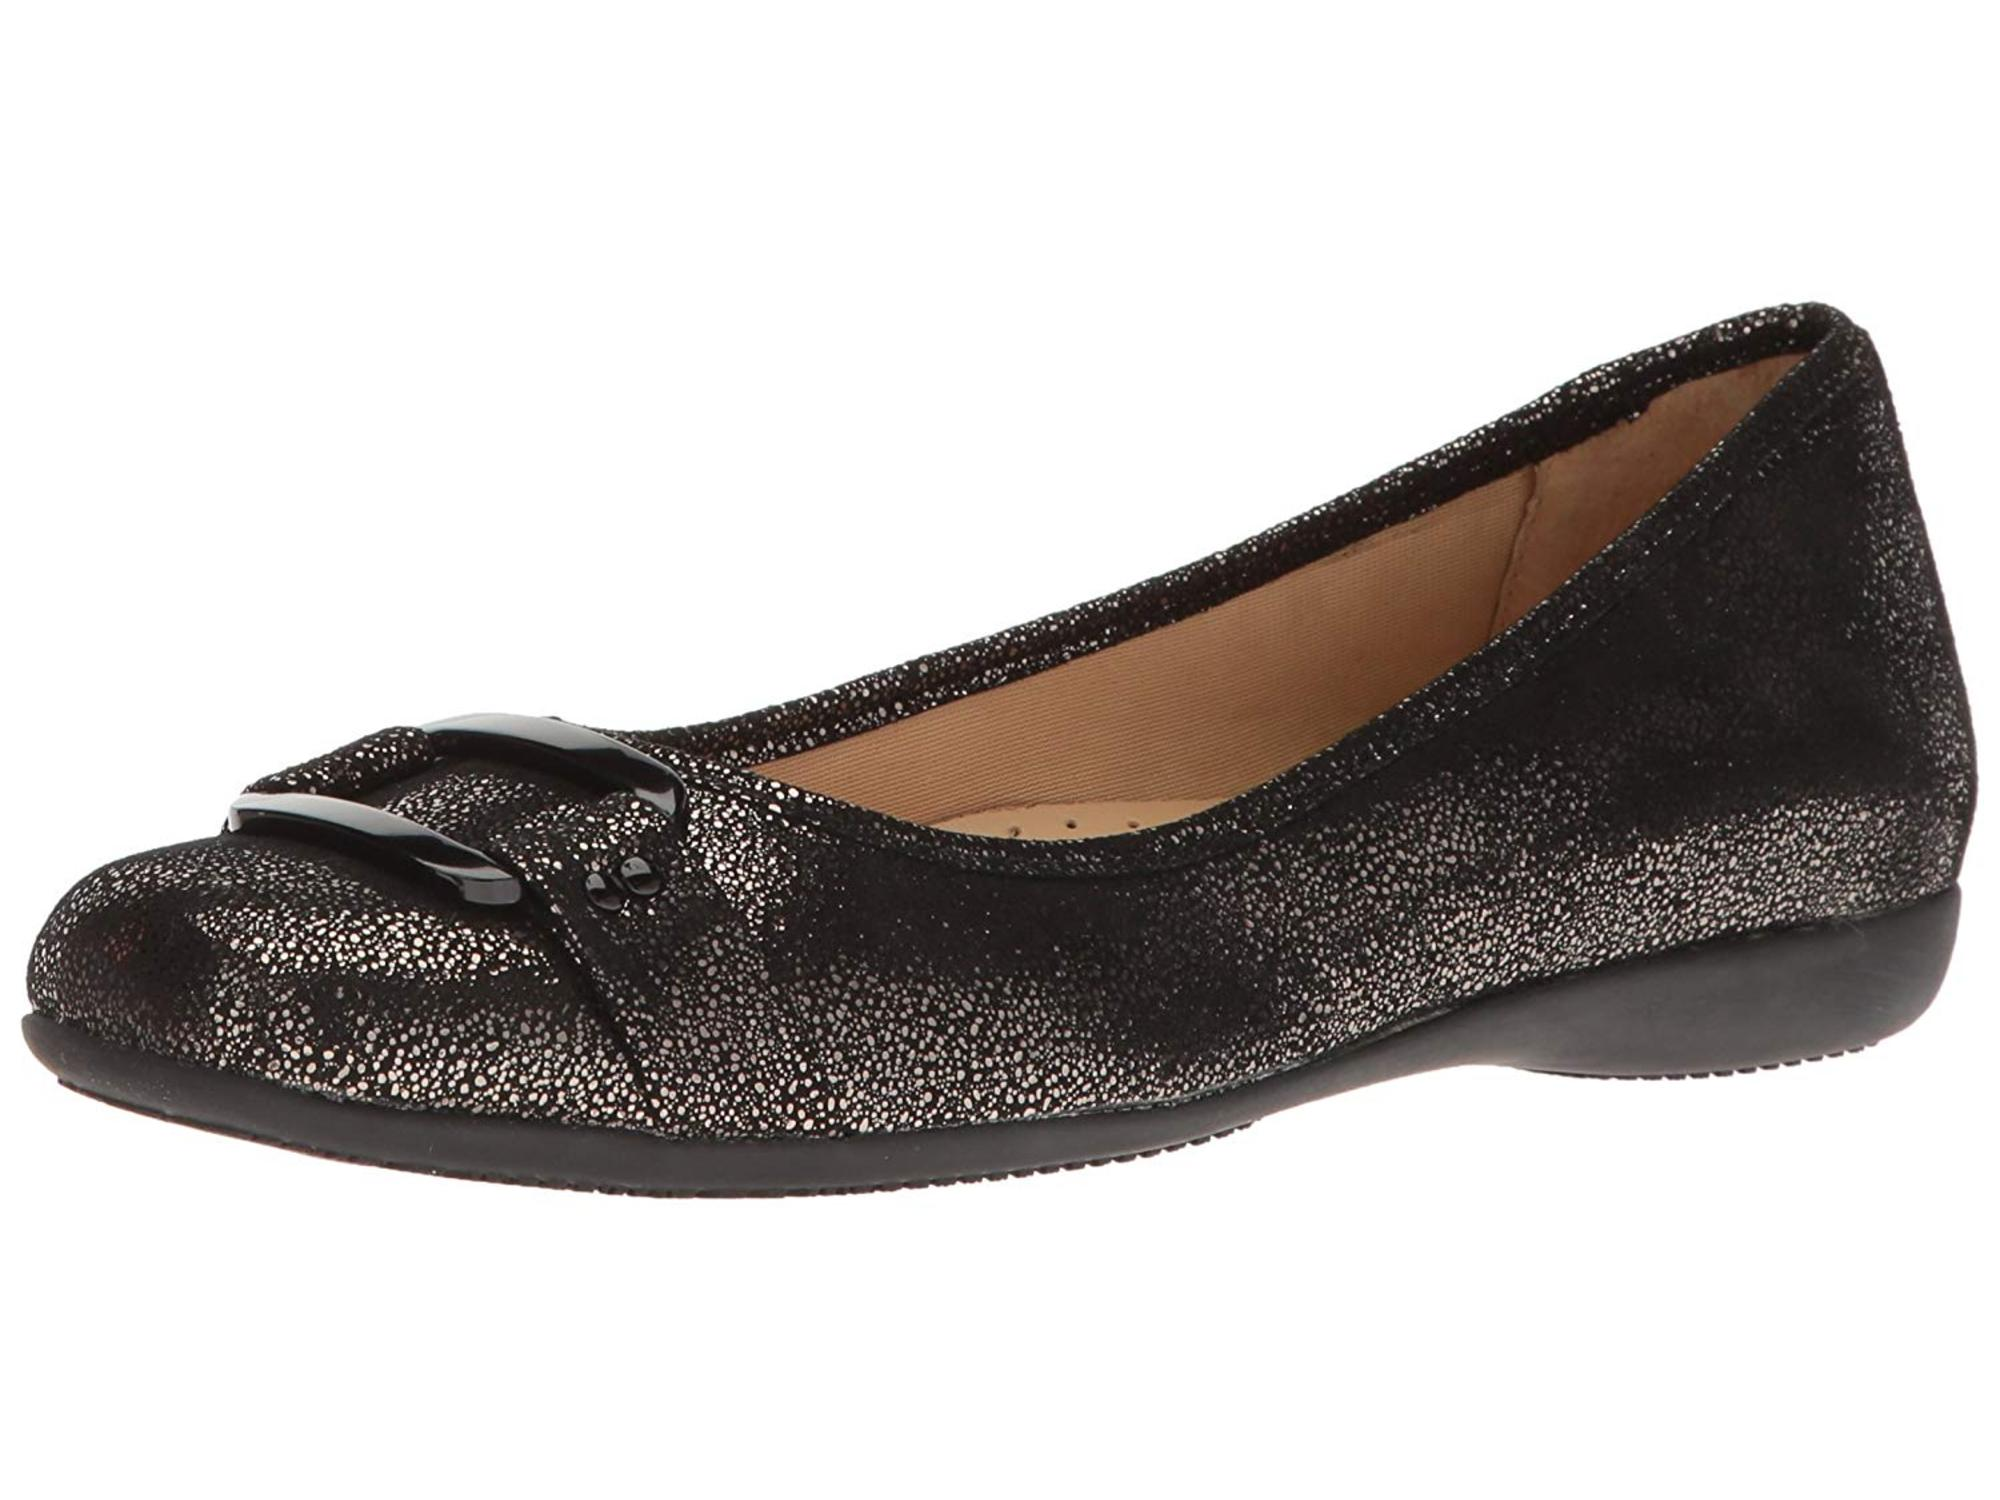 Trotters Women's Sizzle Flat by Trotters